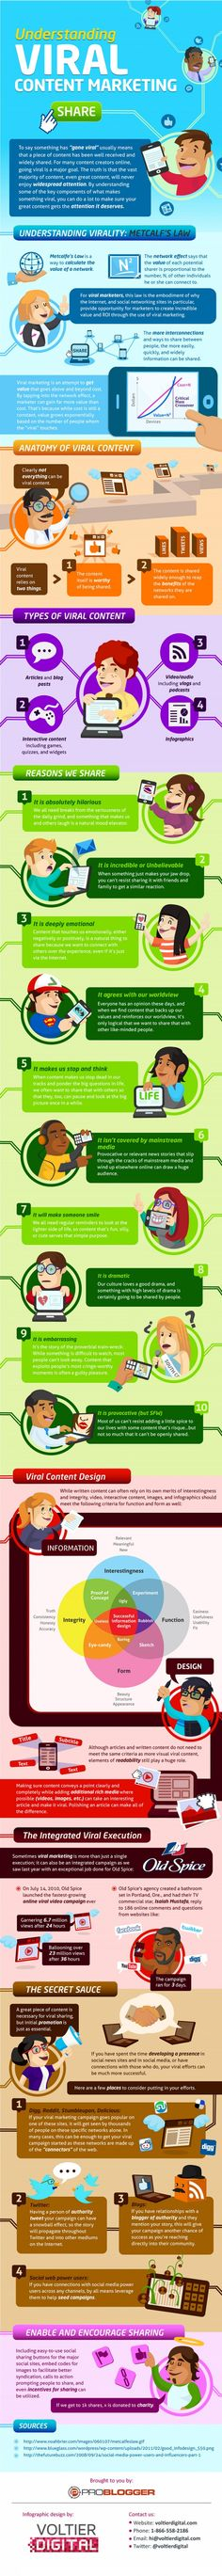 Going Viral cool Infographic